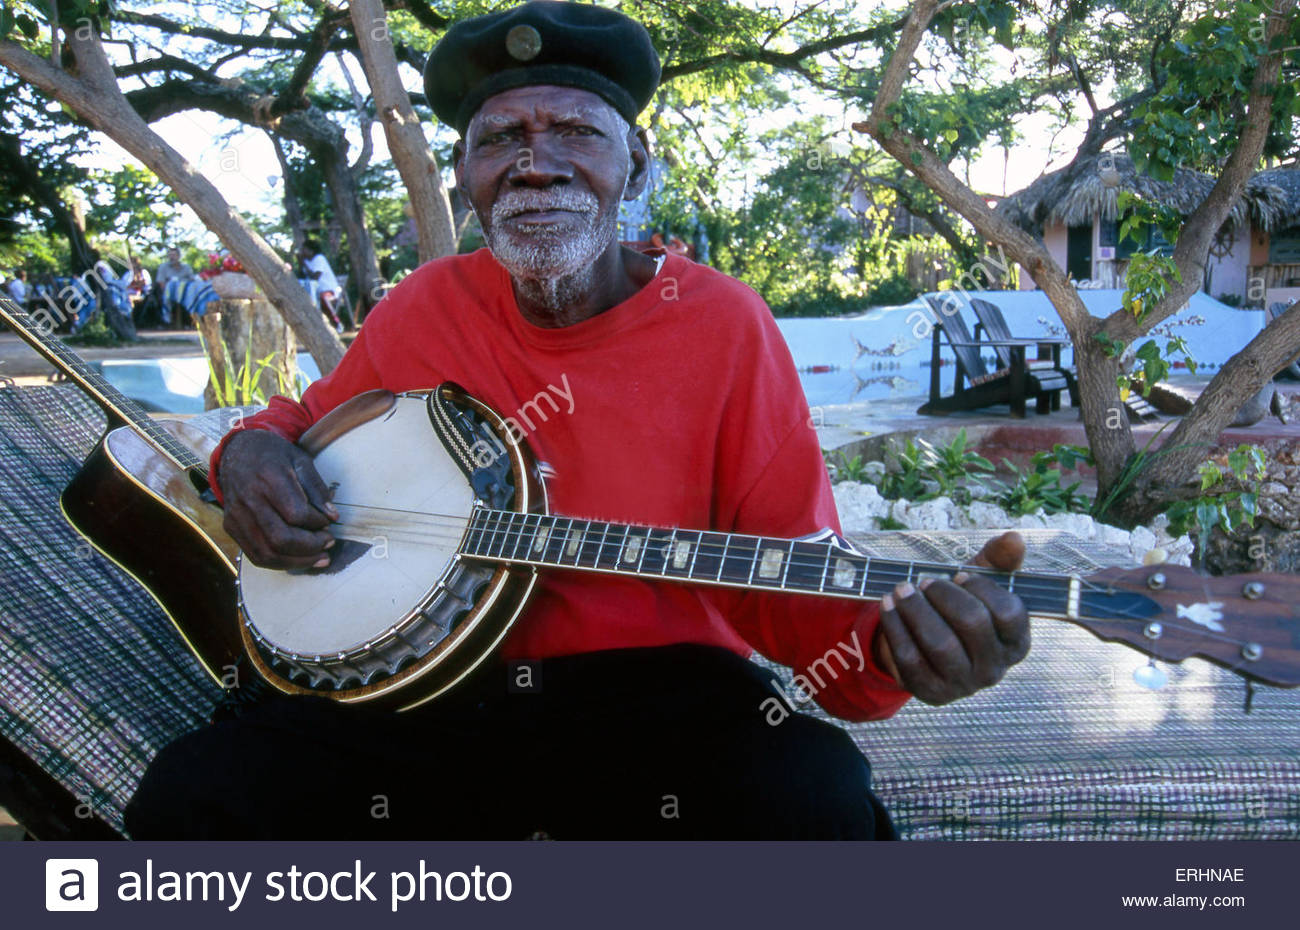 Banjo player in Jamaica - Stock Image